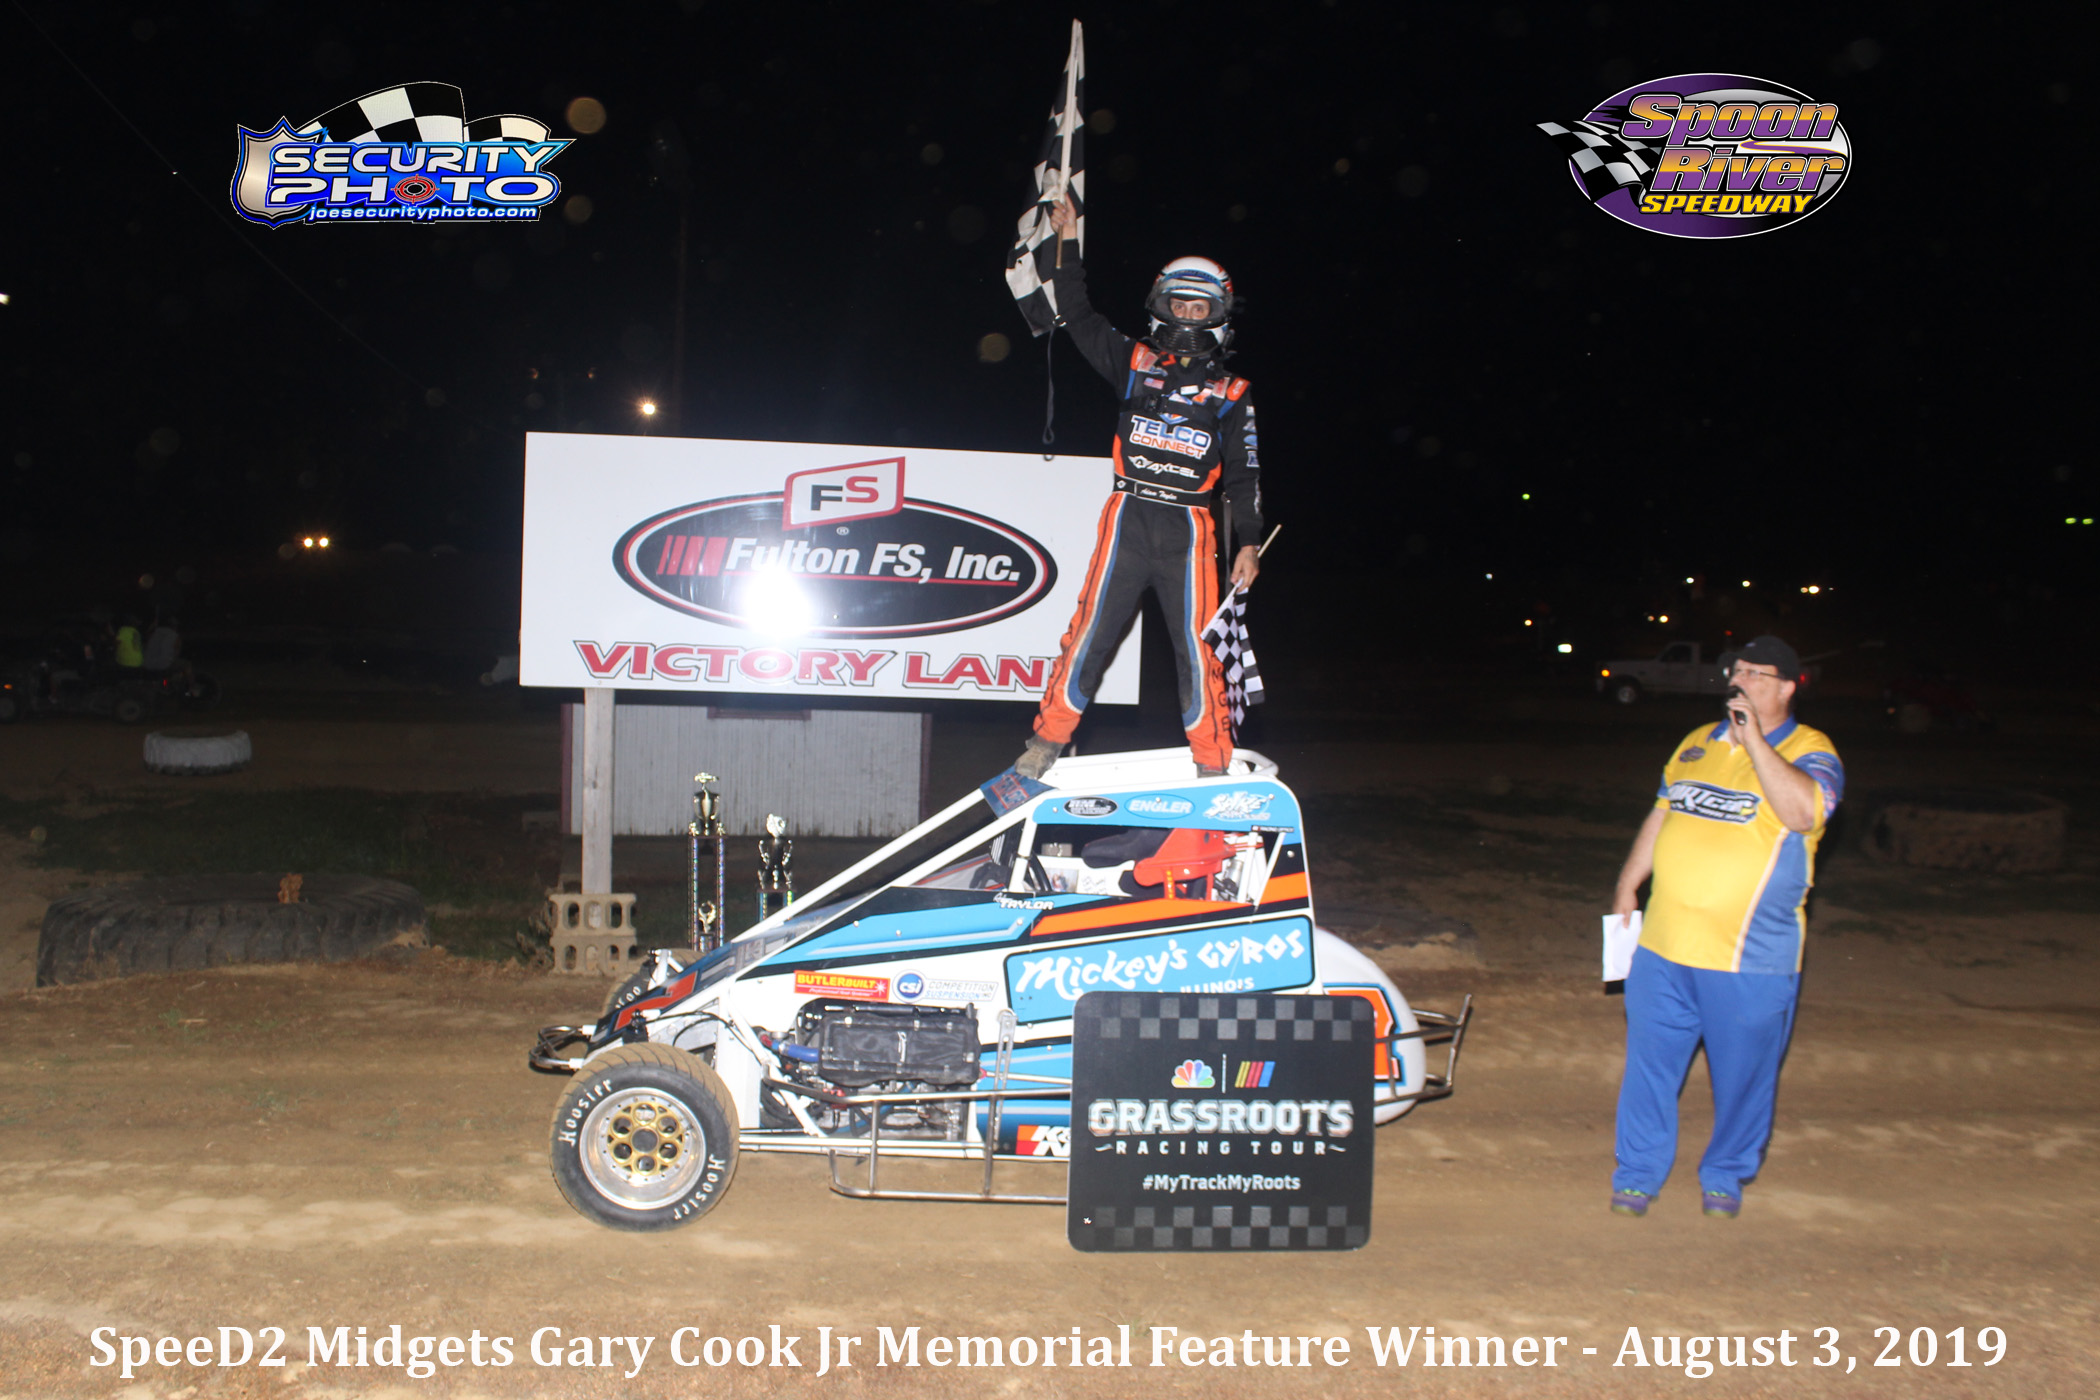 Speed2 Midgets feature winner 7514 copy